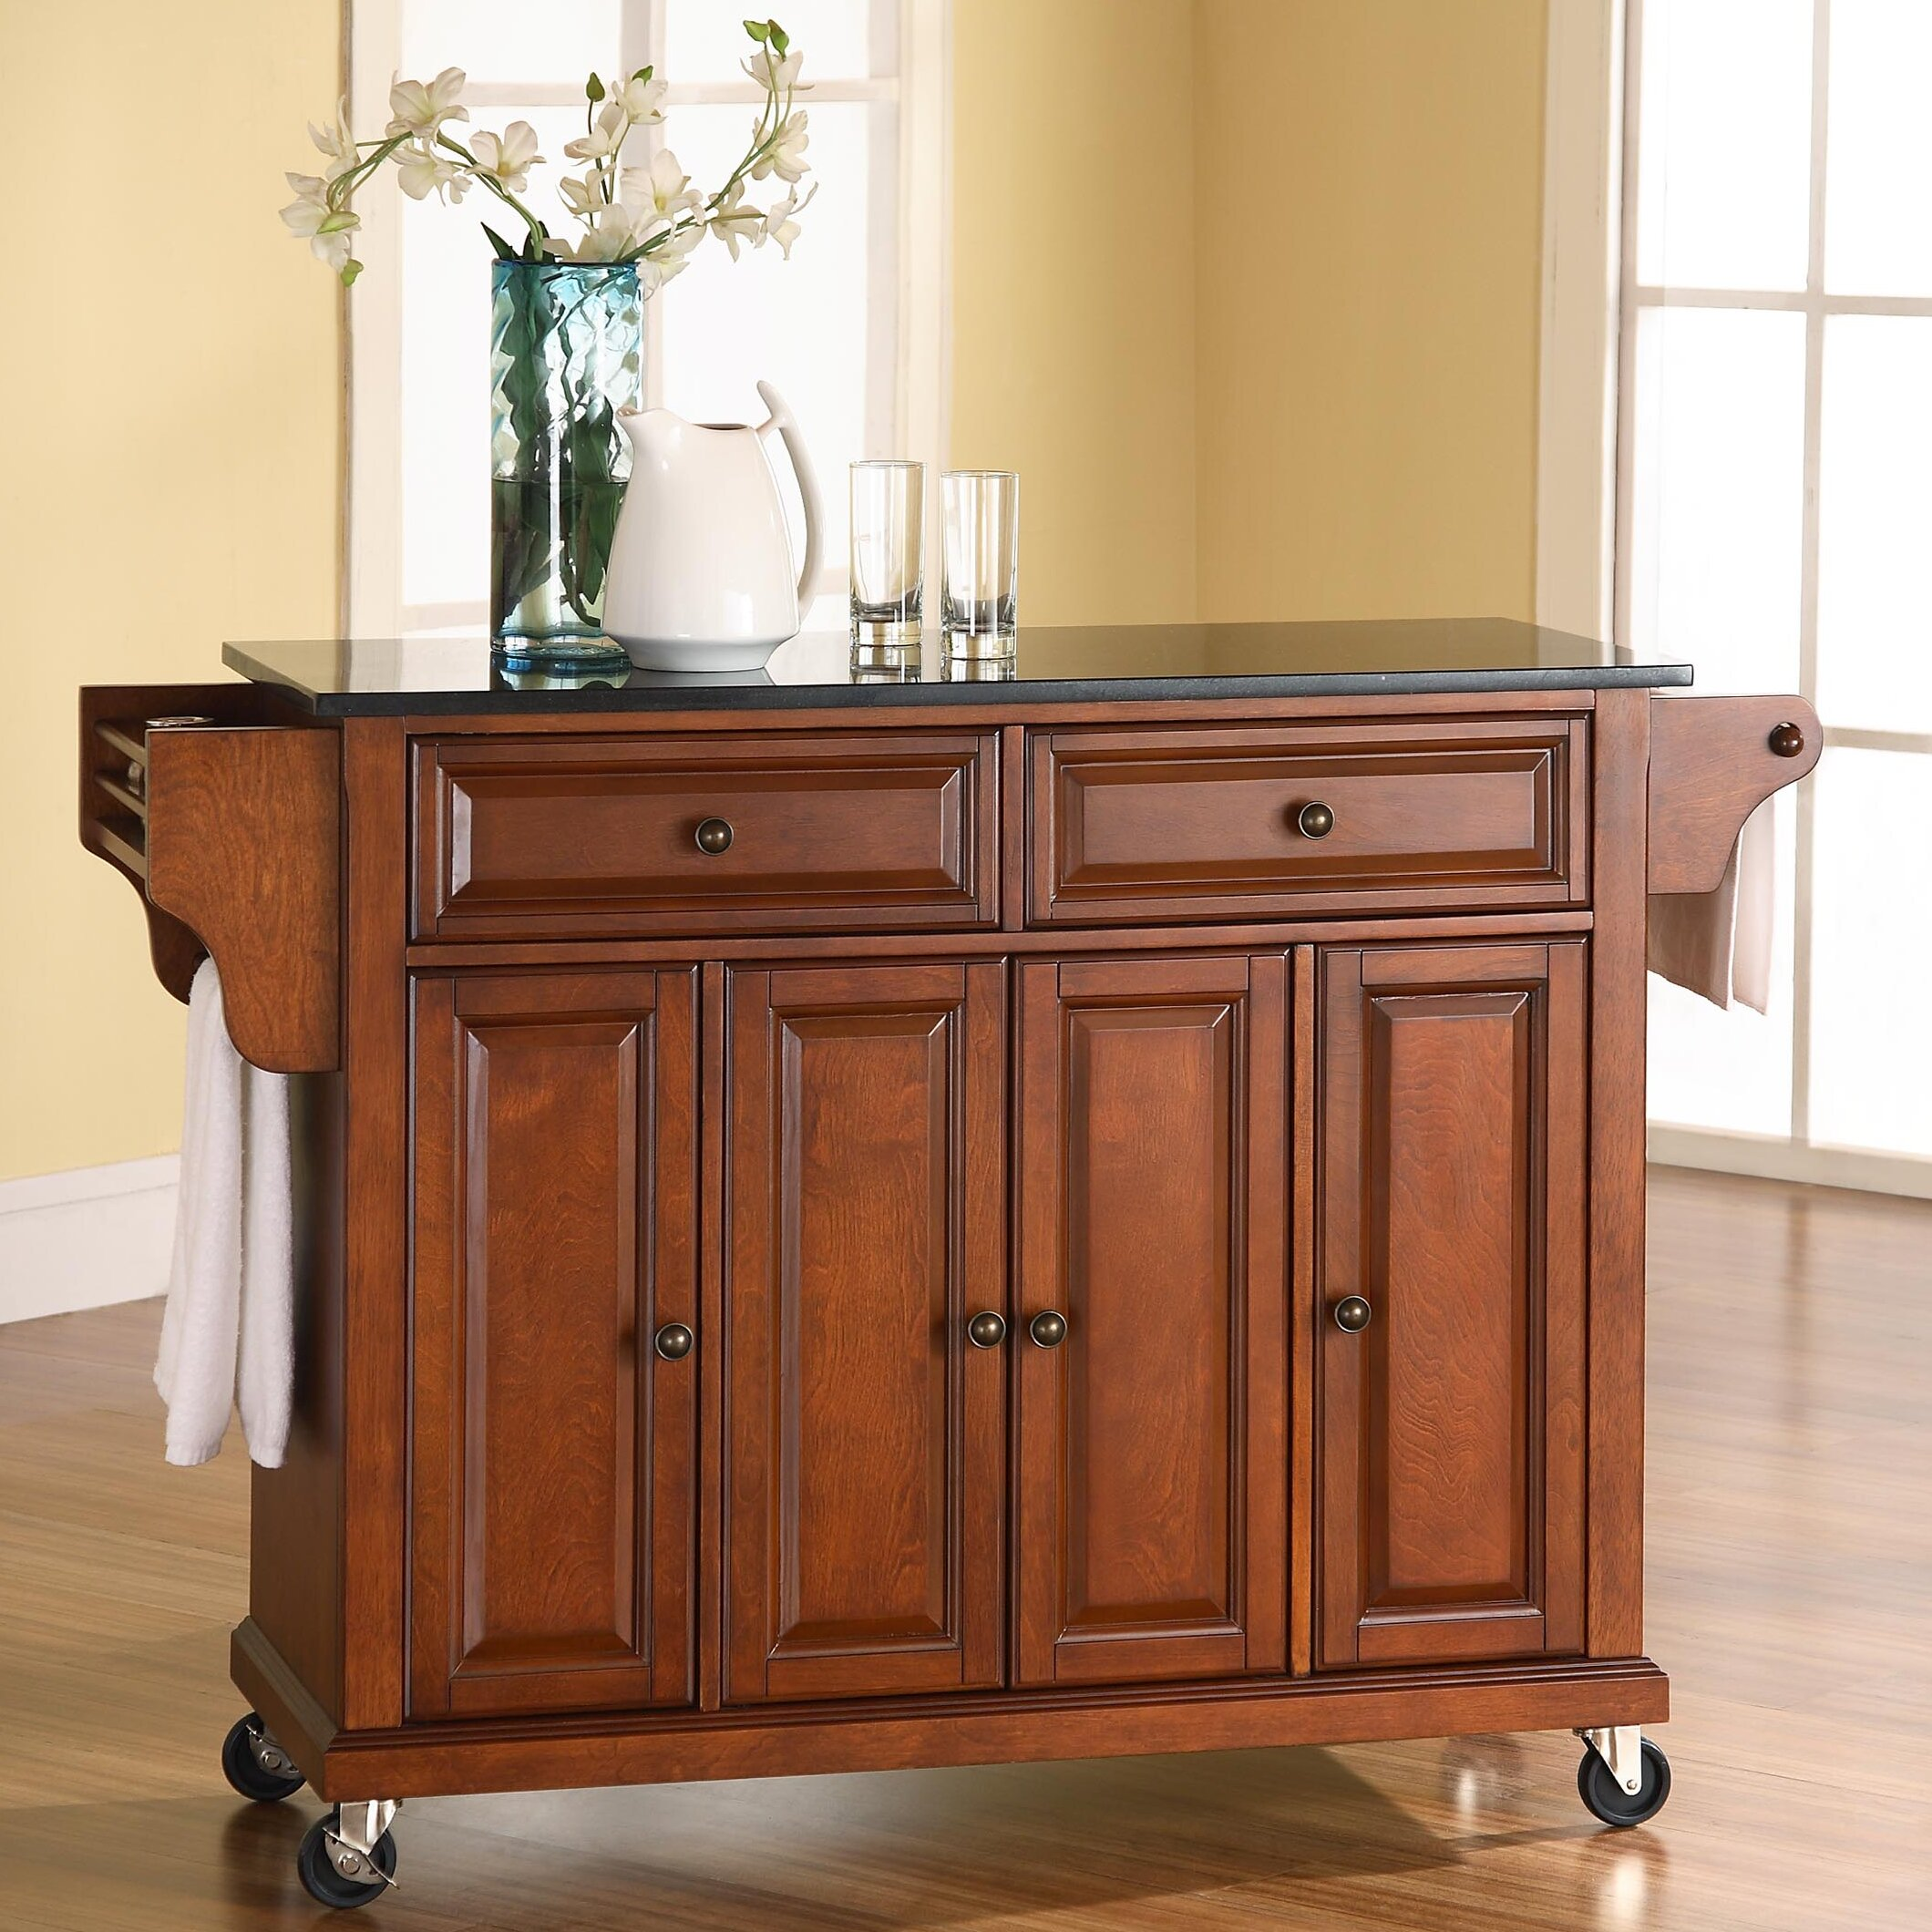 Kitchen Island With Granite Top Easy Home Kitchen Island With Granite Top Instructions Best